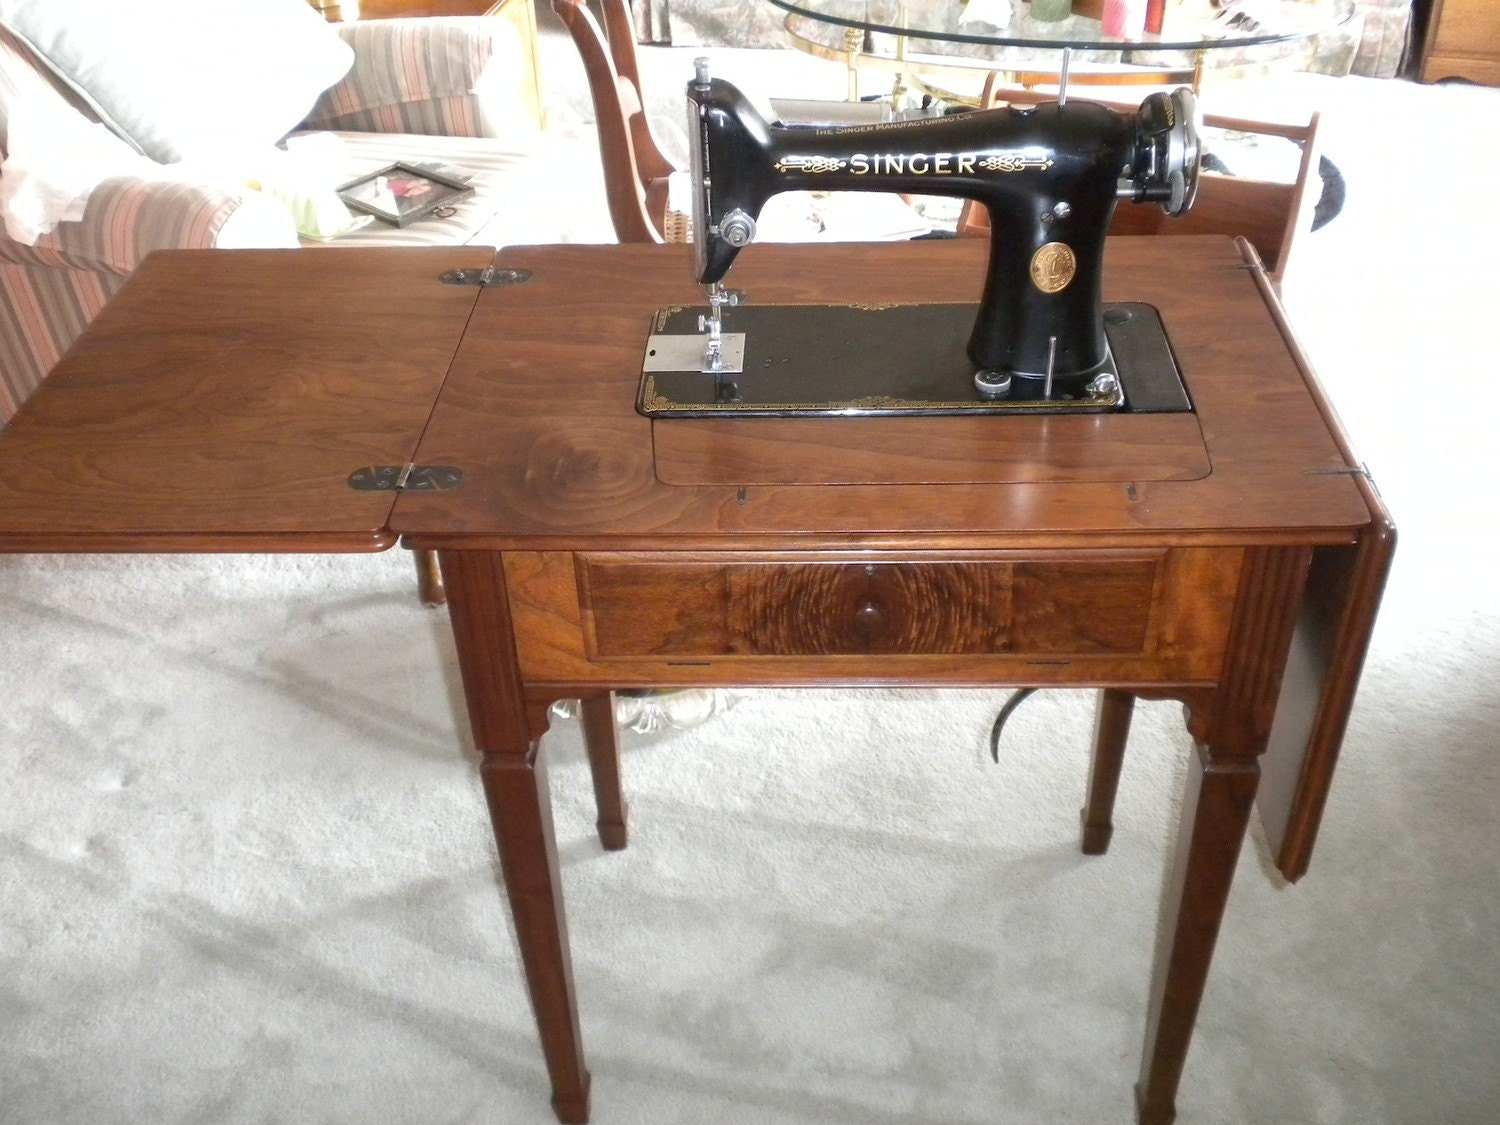 value of old singer sewing machine in cabinet vintage sewing machine cabinet cabinets